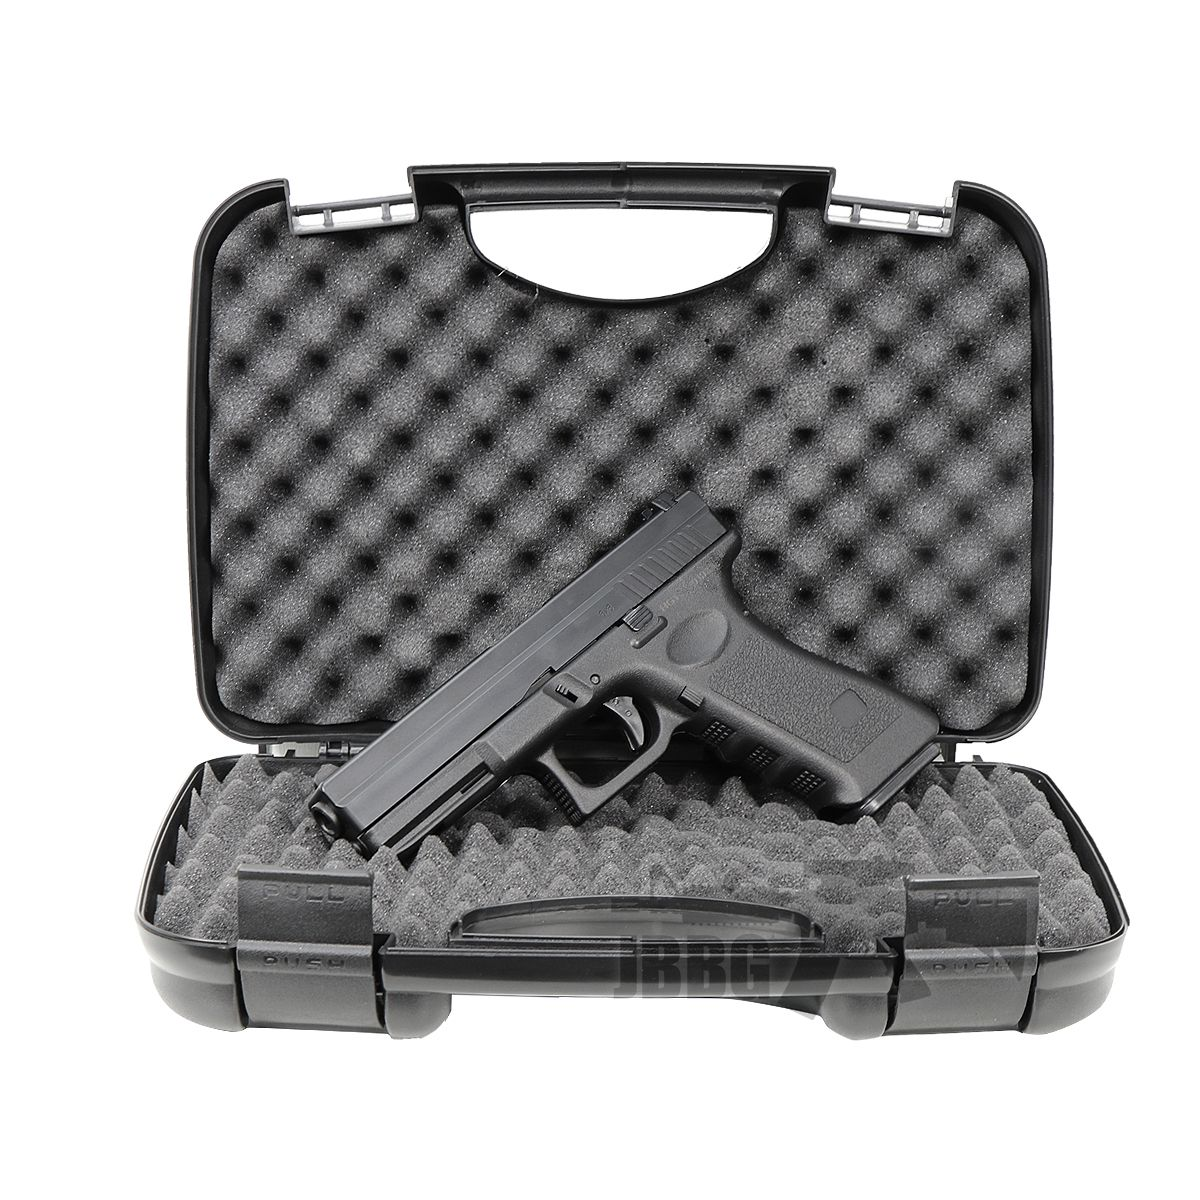 hg184 airsoft pistol